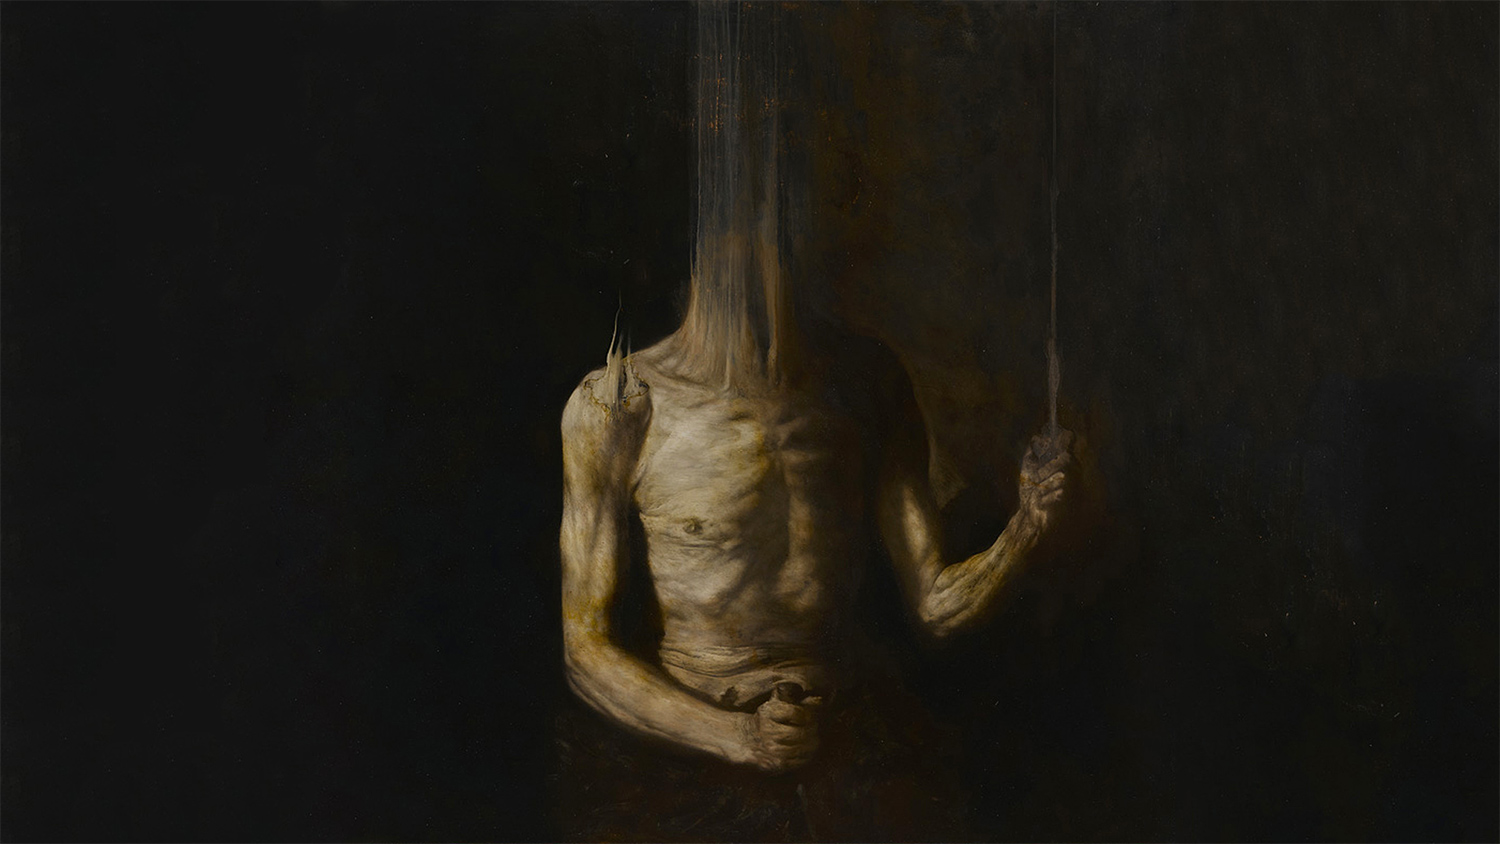 Nicola Samori - painting, The Limits of Control